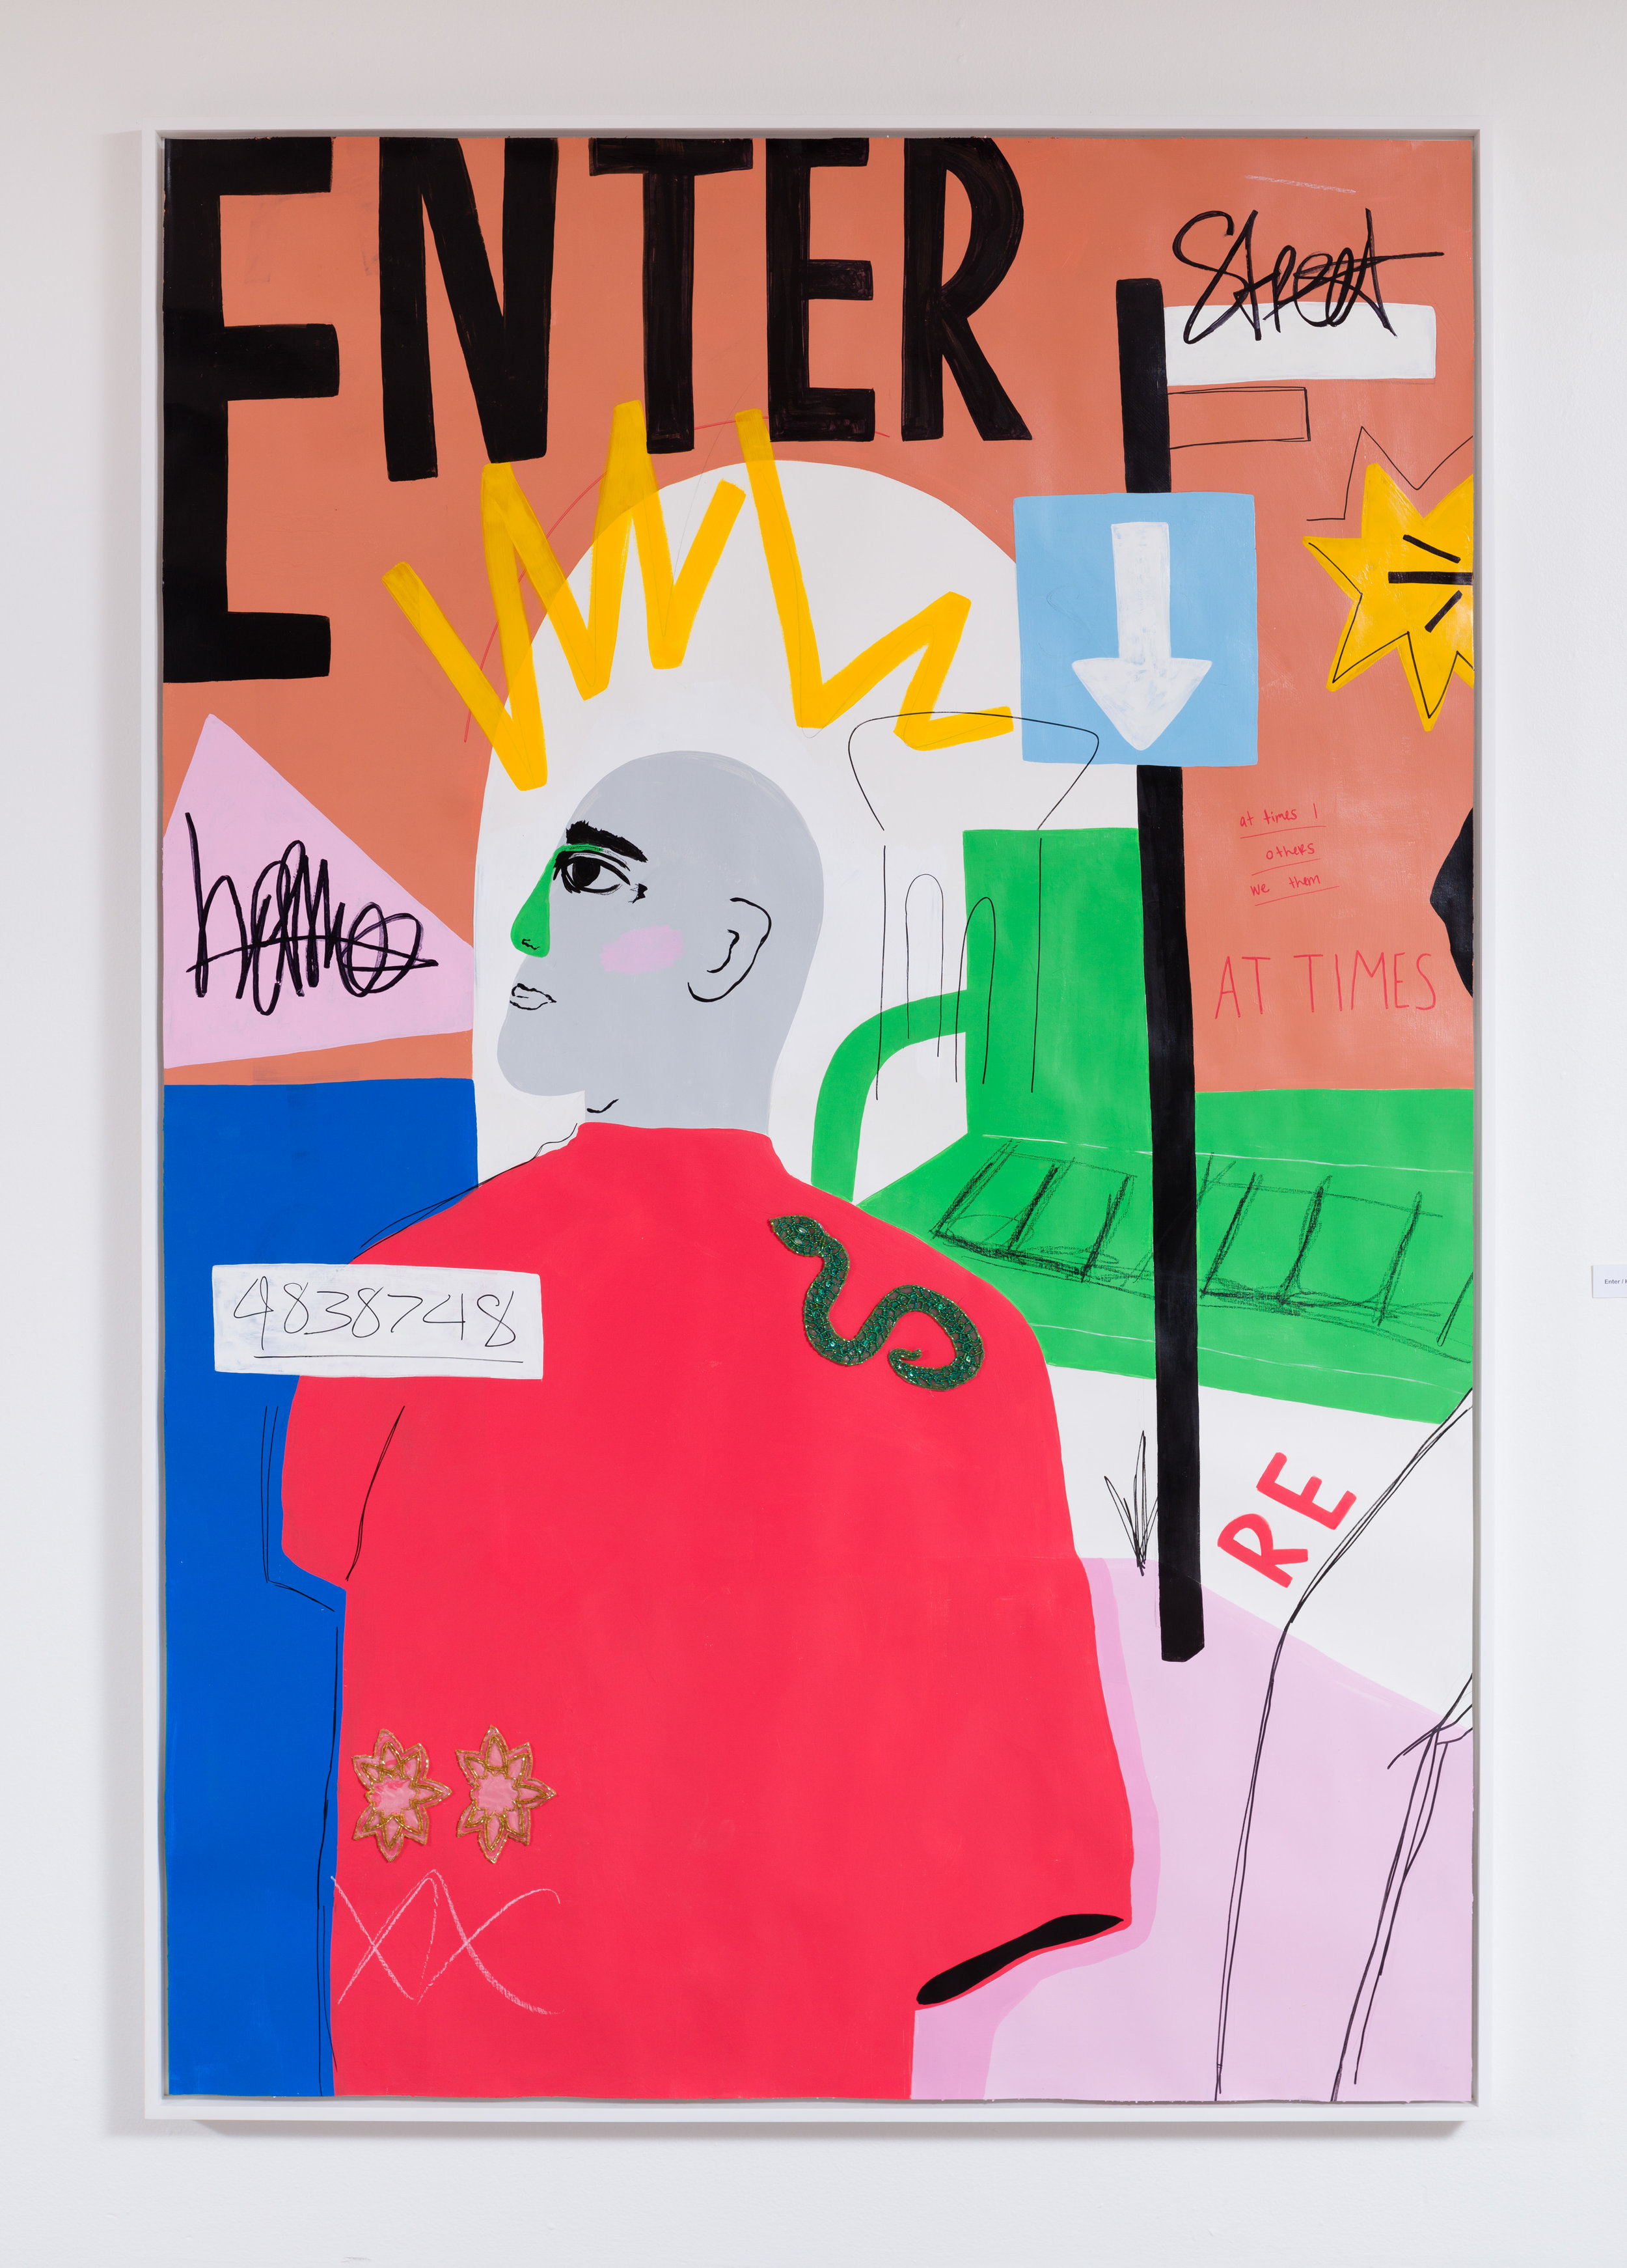 Enter / Homes / Street, acrylic, sharpie, pencil, oil pastel and beaded ap- pliques on paper, 72 x 48 inches, unframed, 2017.